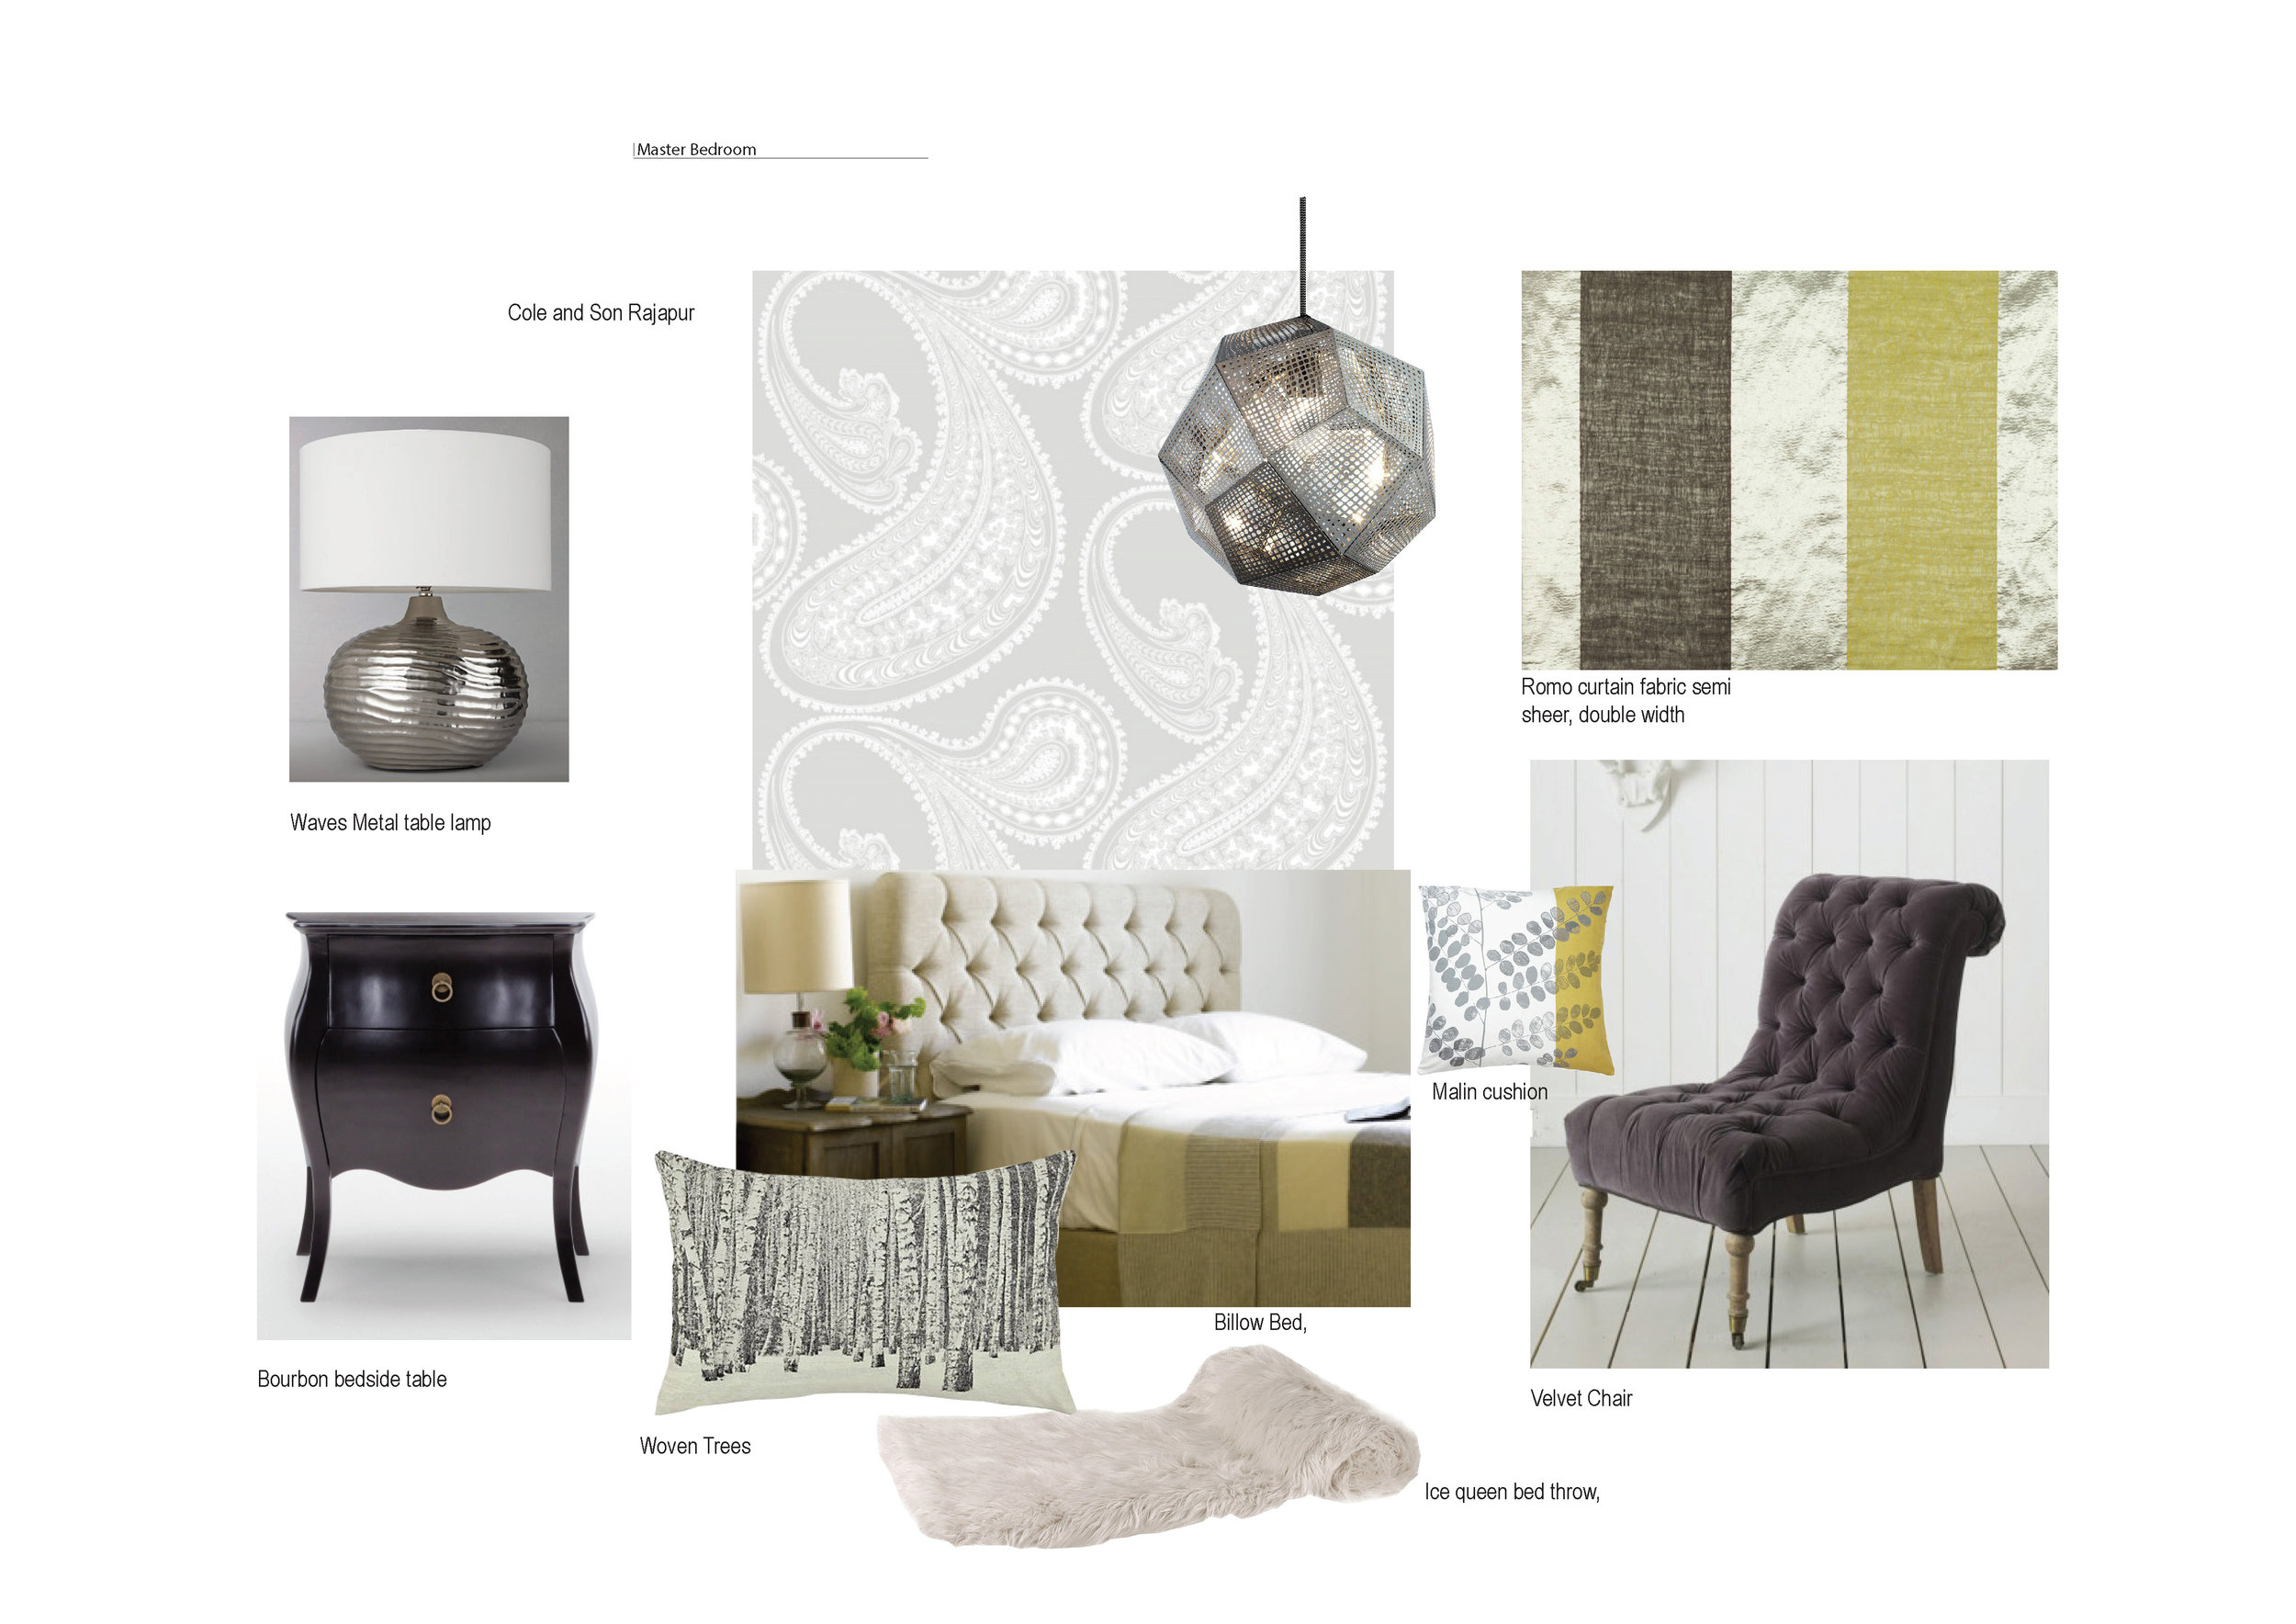 New Showhome Apartment 7_SEPT 2015_Page_3 copy.jpg